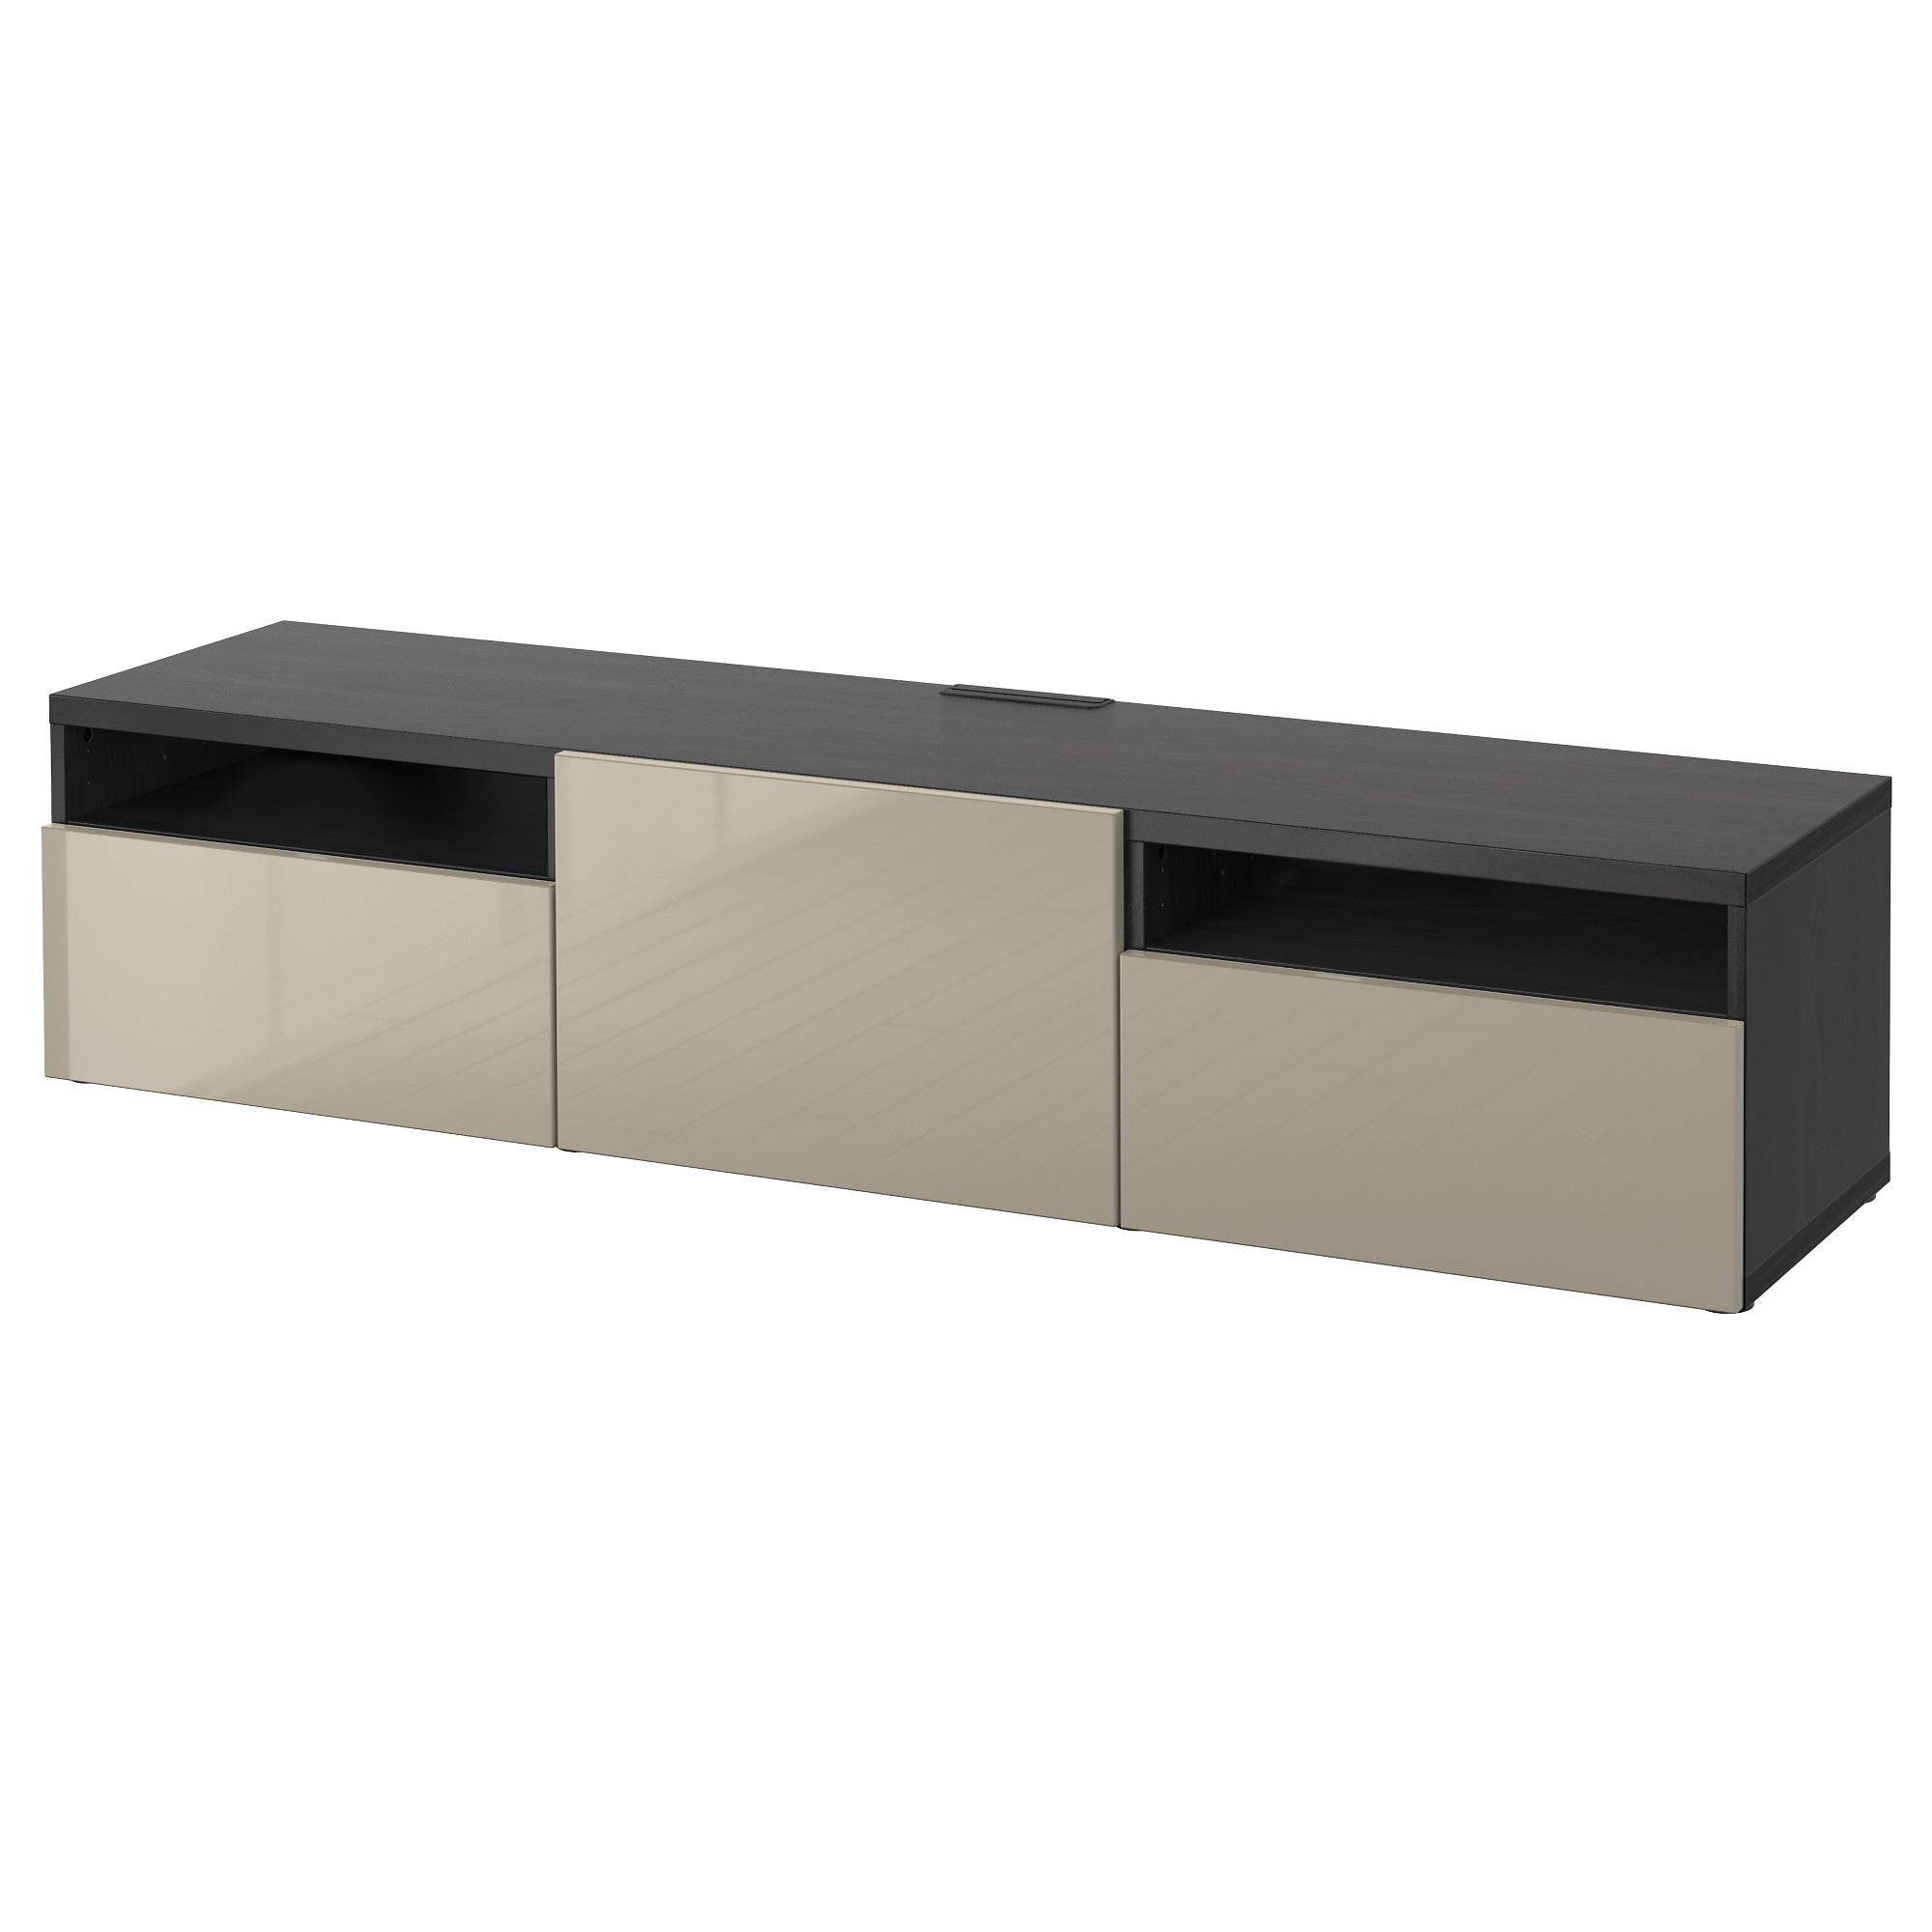 tv m bel versenkbar fernseher versenkbar sideboard. Black Bedroom Furniture Sets. Home Design Ideas